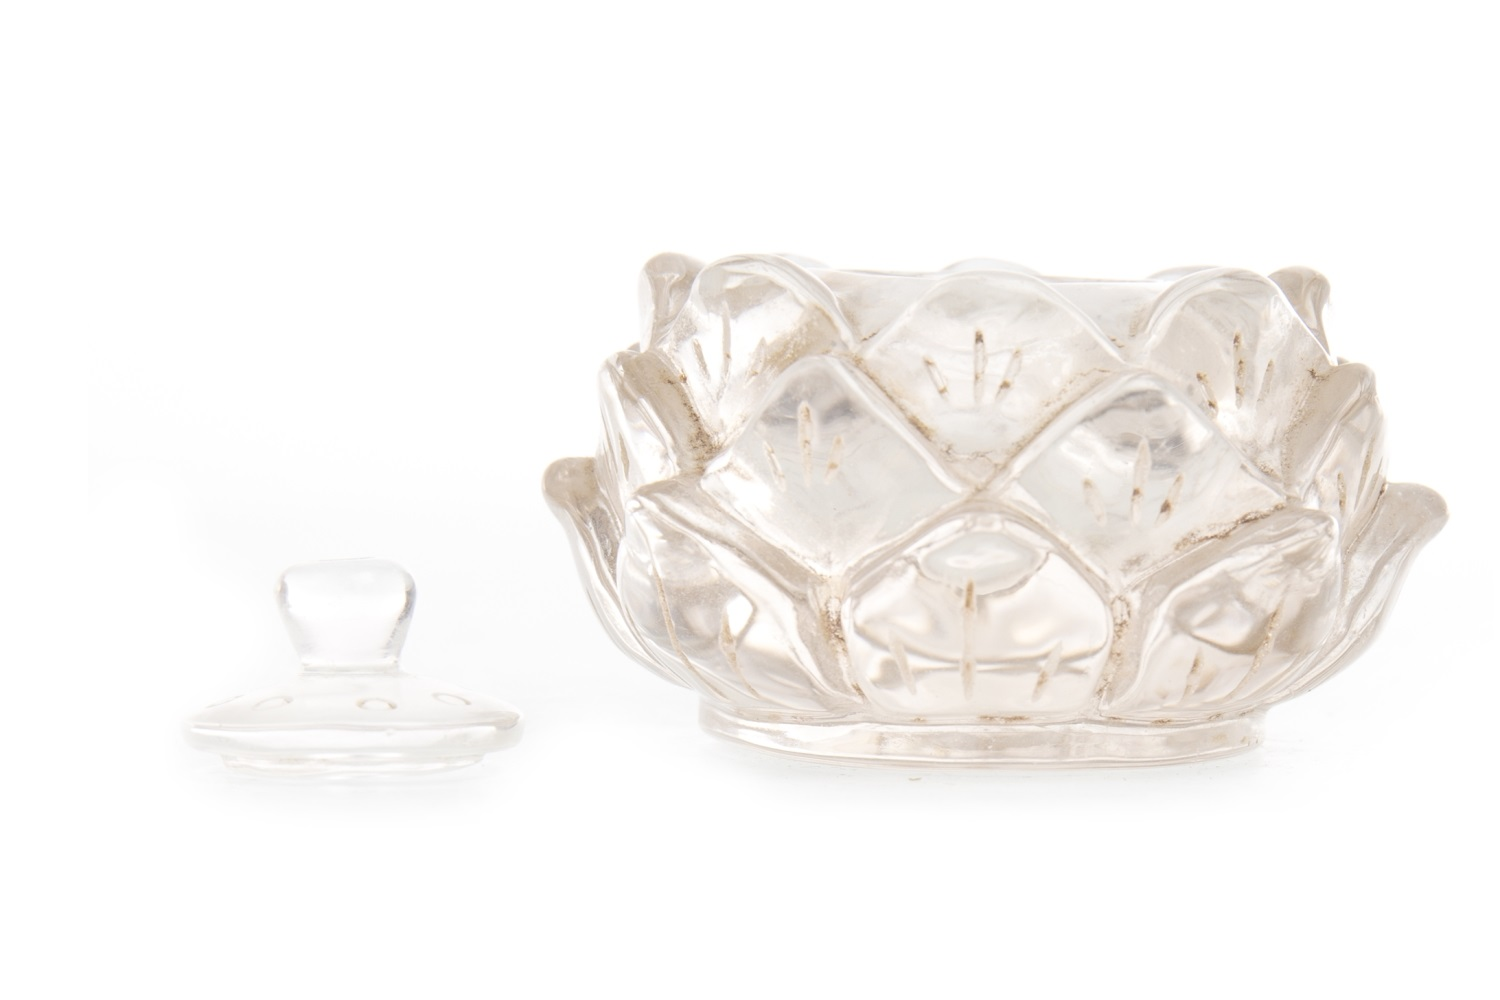 Lot 1057 - A LATE 19TH/EARLY 20TH CENTURY ROCK CRYSTAL INKWELL